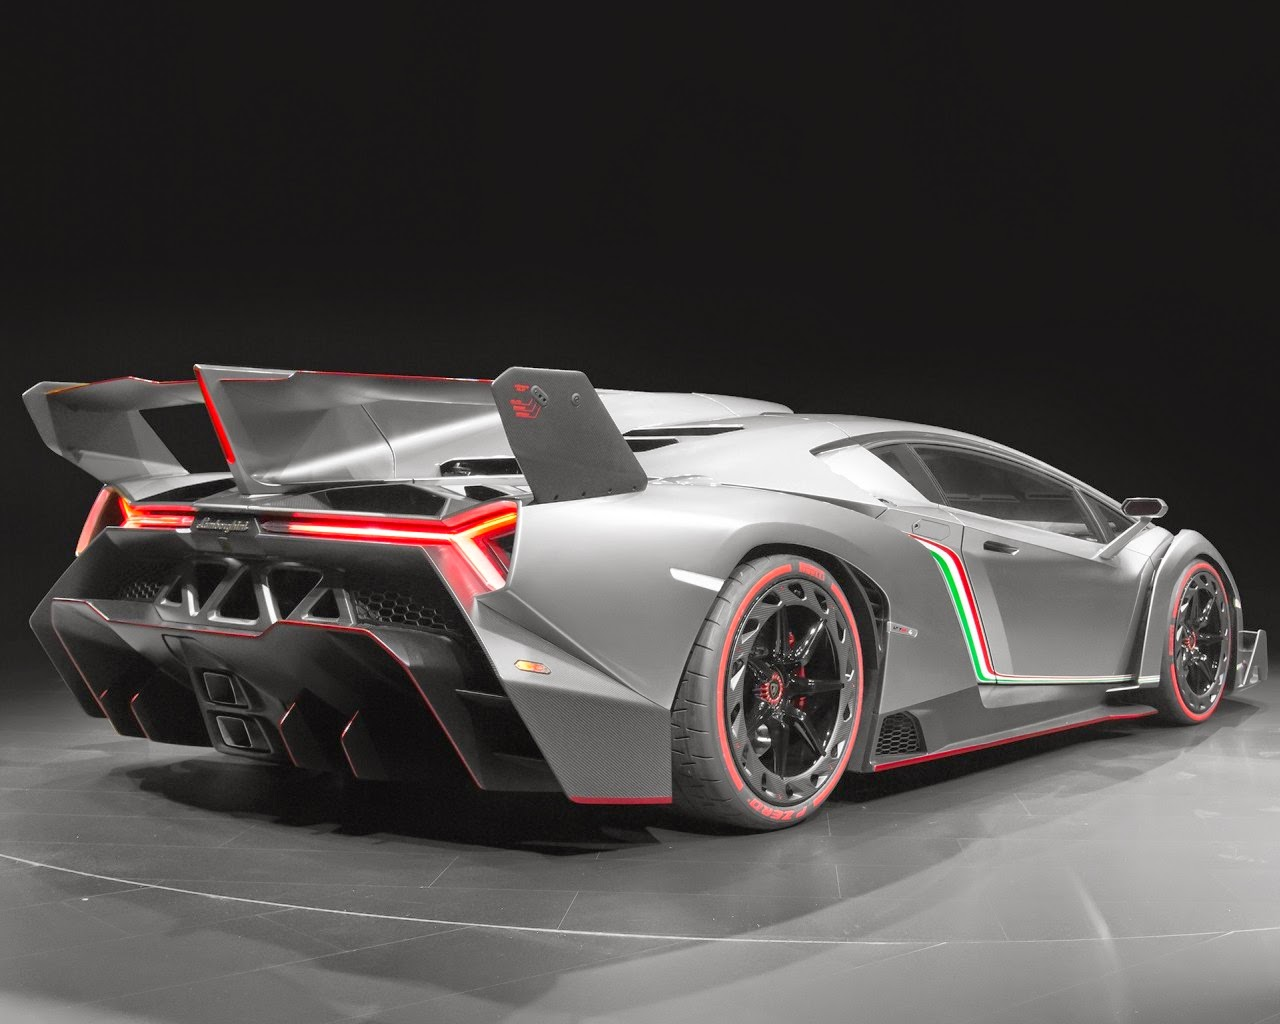 lamborghini veneno wallpapers best lamborghini veneno wallpapers download. Black Bedroom Furniture Sets. Home Design Ideas